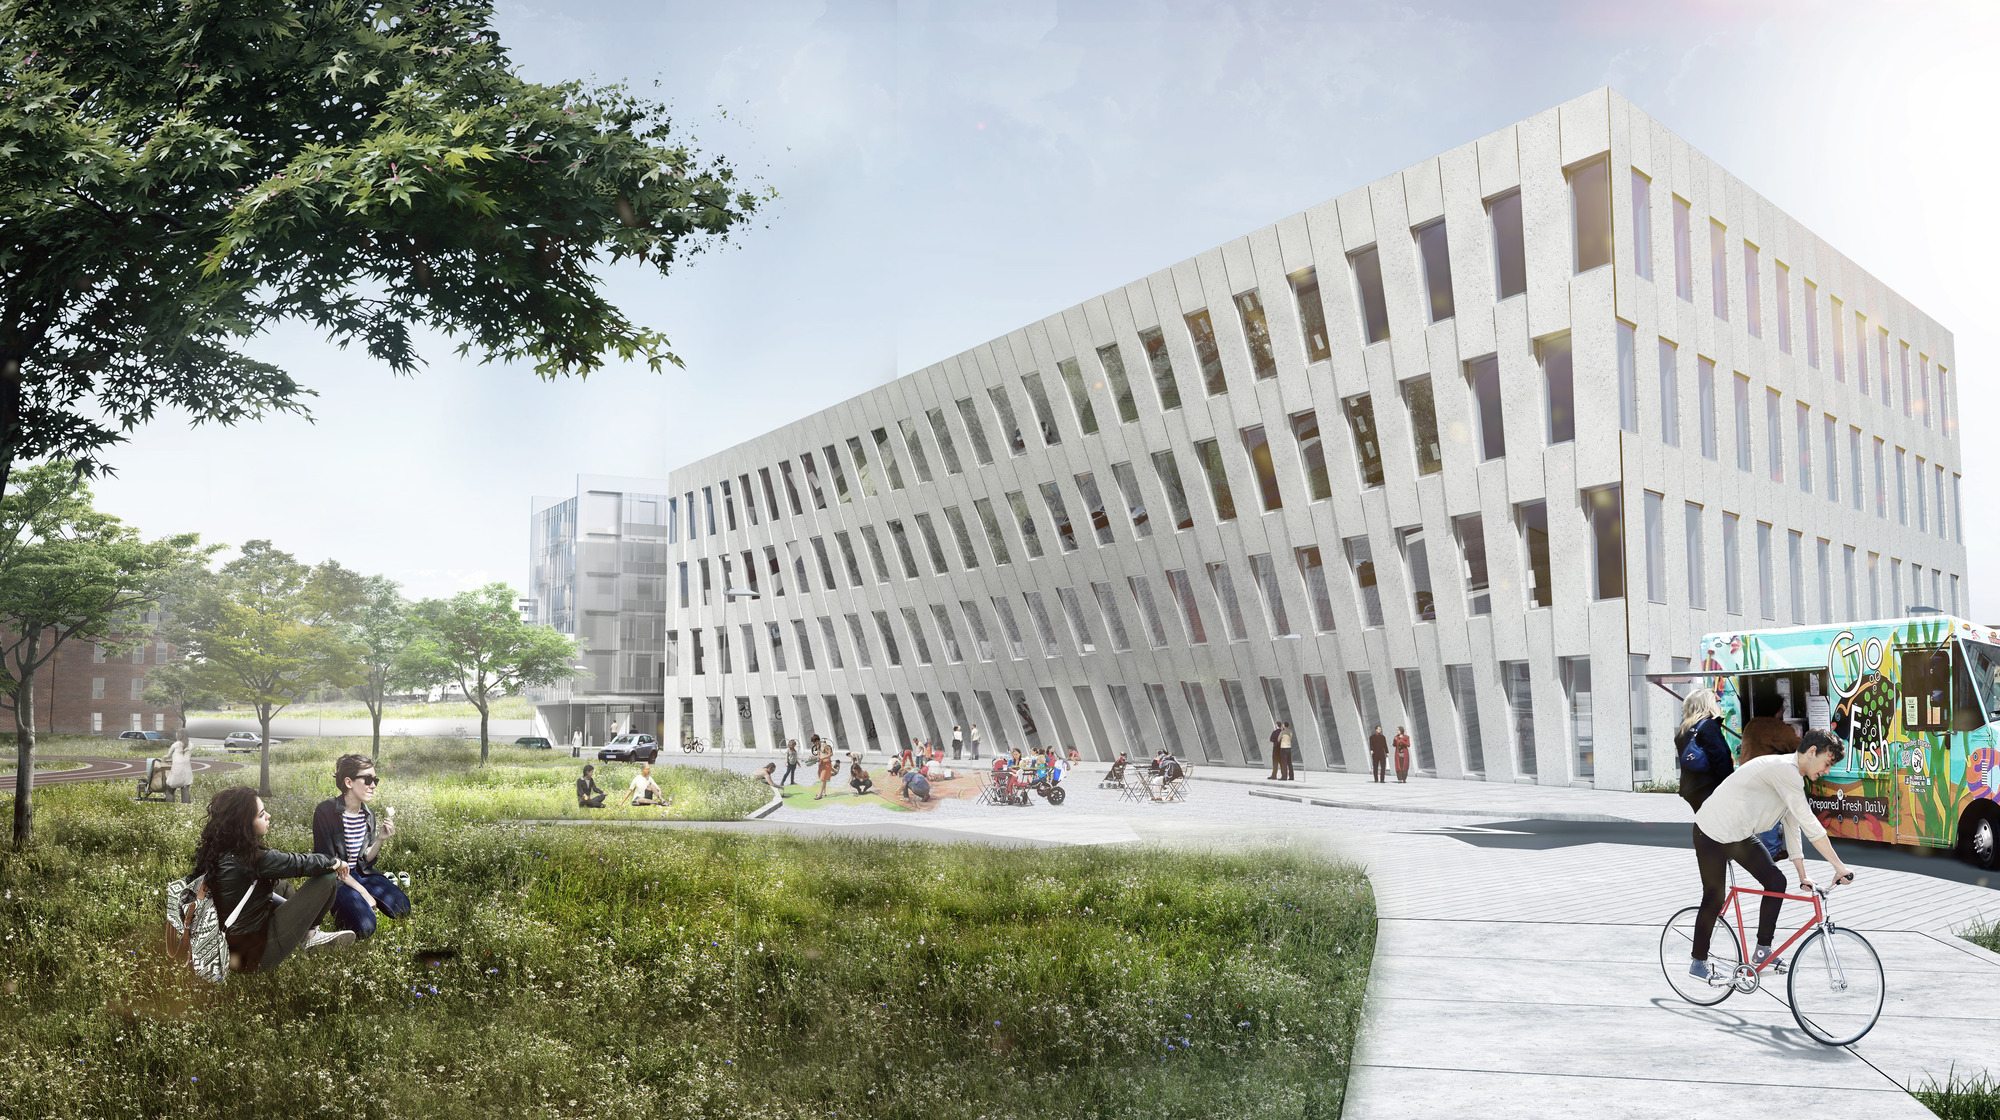 Bjarke ingels recebe o louis kahn memorial award 2016 for Big bjarke ingels group